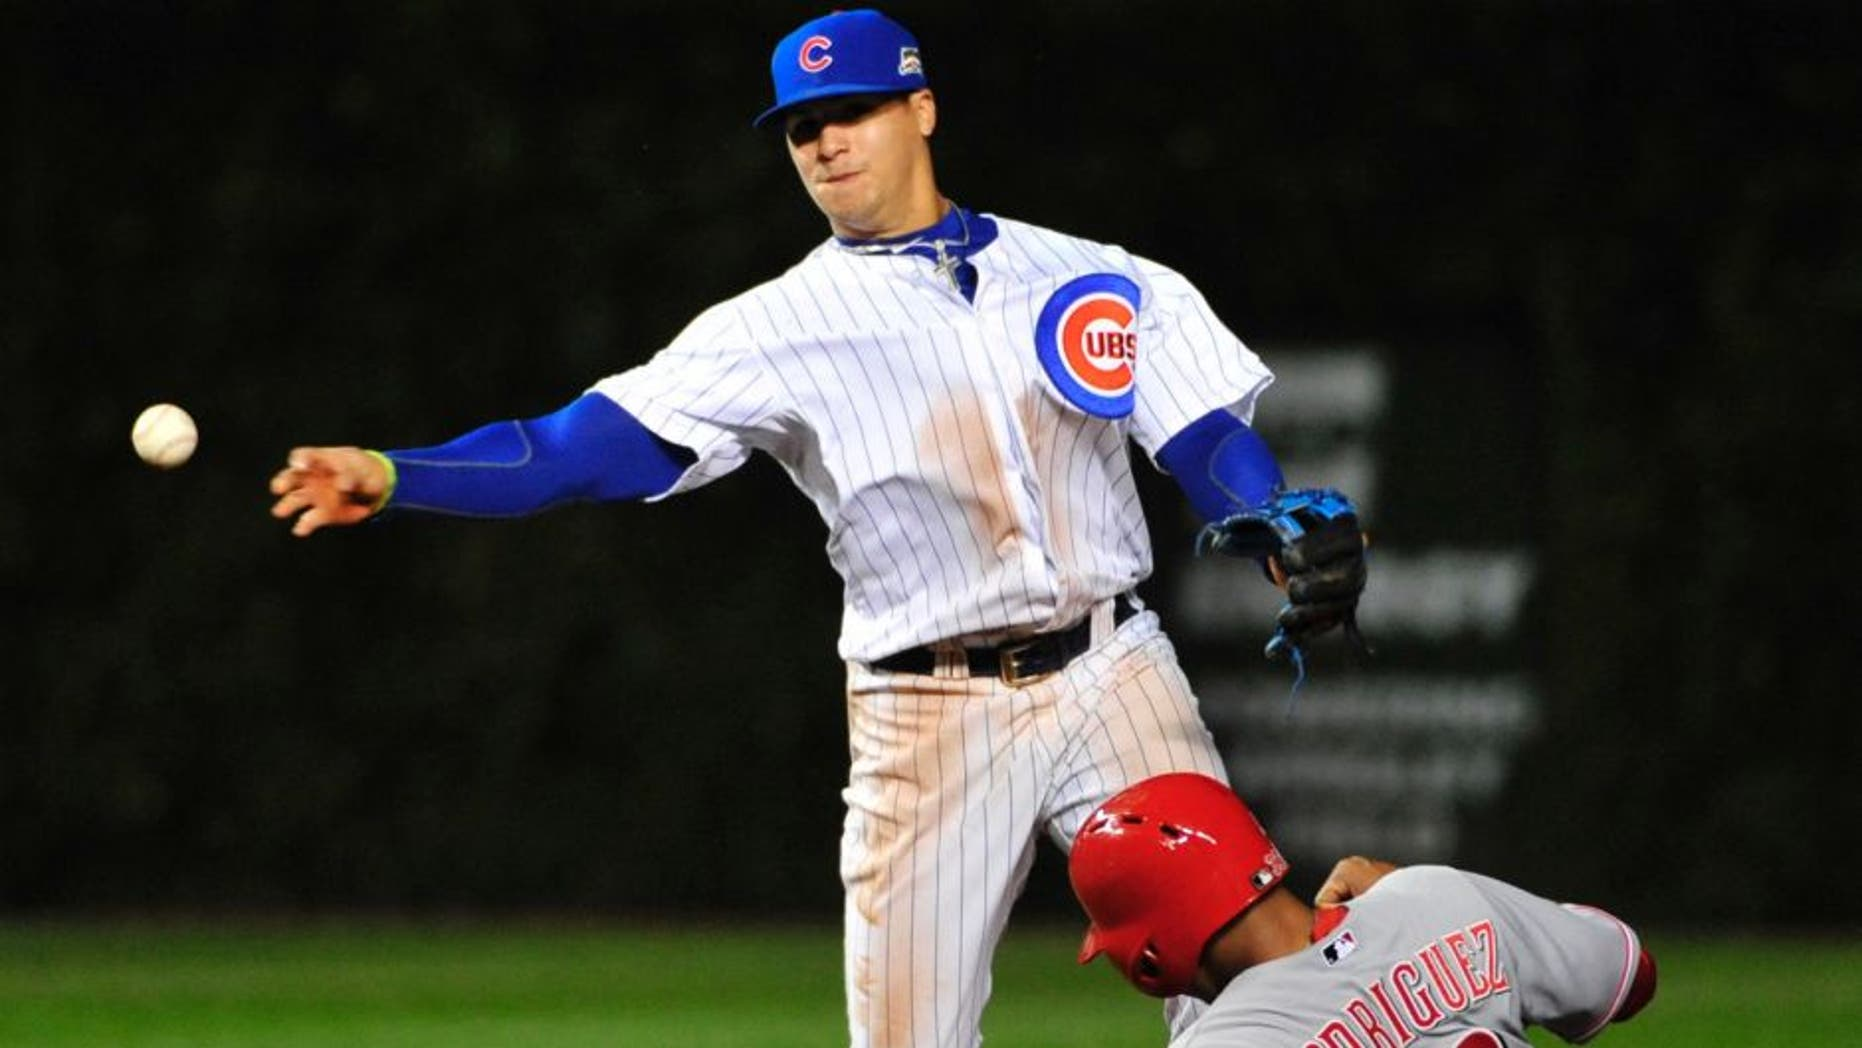 Chicago Cubs shortstop Javier Baez, left, forces out Cincinnati Reds' Yorman Rodriguez (33) at second base during the fourth inning of a baseball game, Wednesday, Sept. 17, 2014 in Chicago. (AP Photo/David Banks)